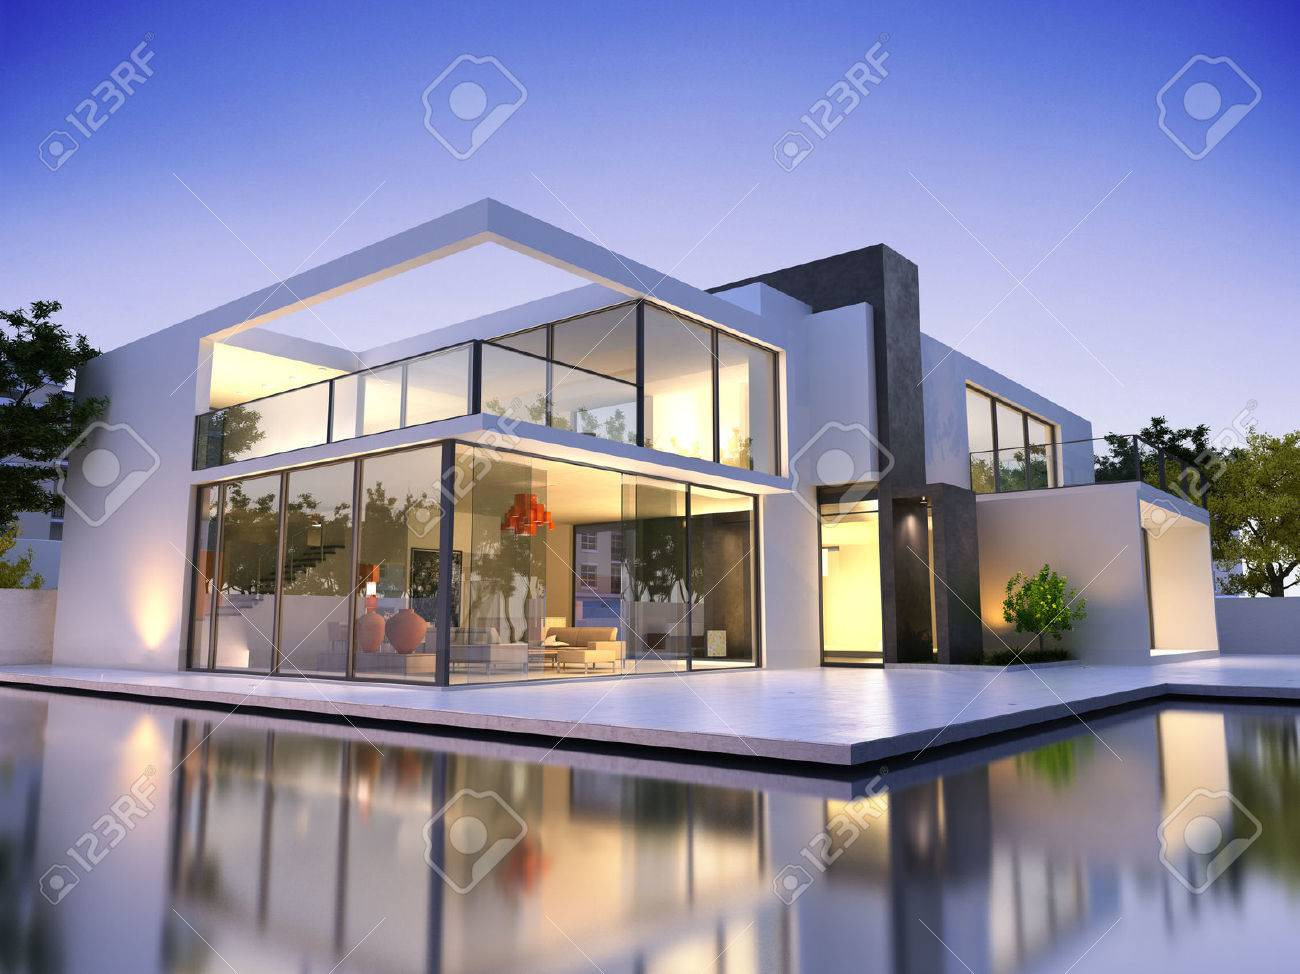 Realistic 3d Rendering Of A Very Modern Upscale House With Swimming